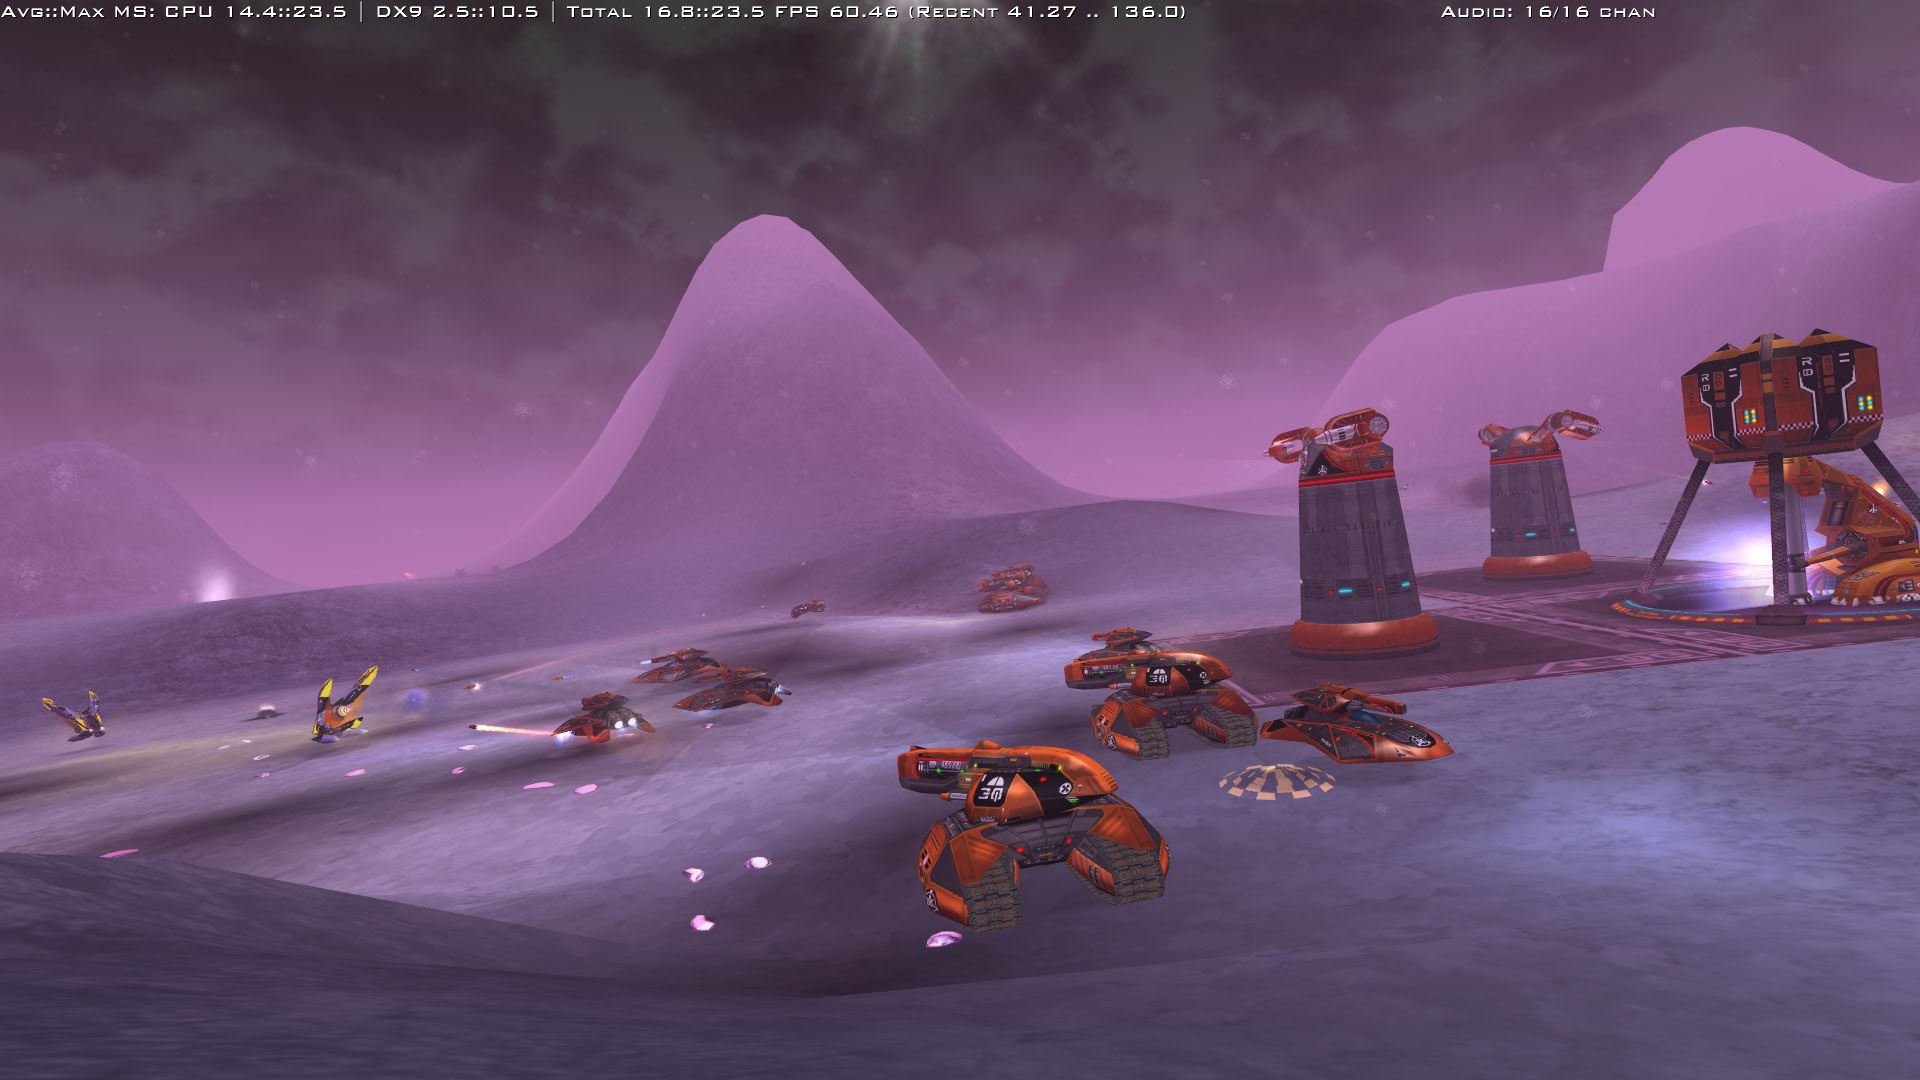 Banefight 5 image battlezone ii remodeled for battlezone for Battlezone 2